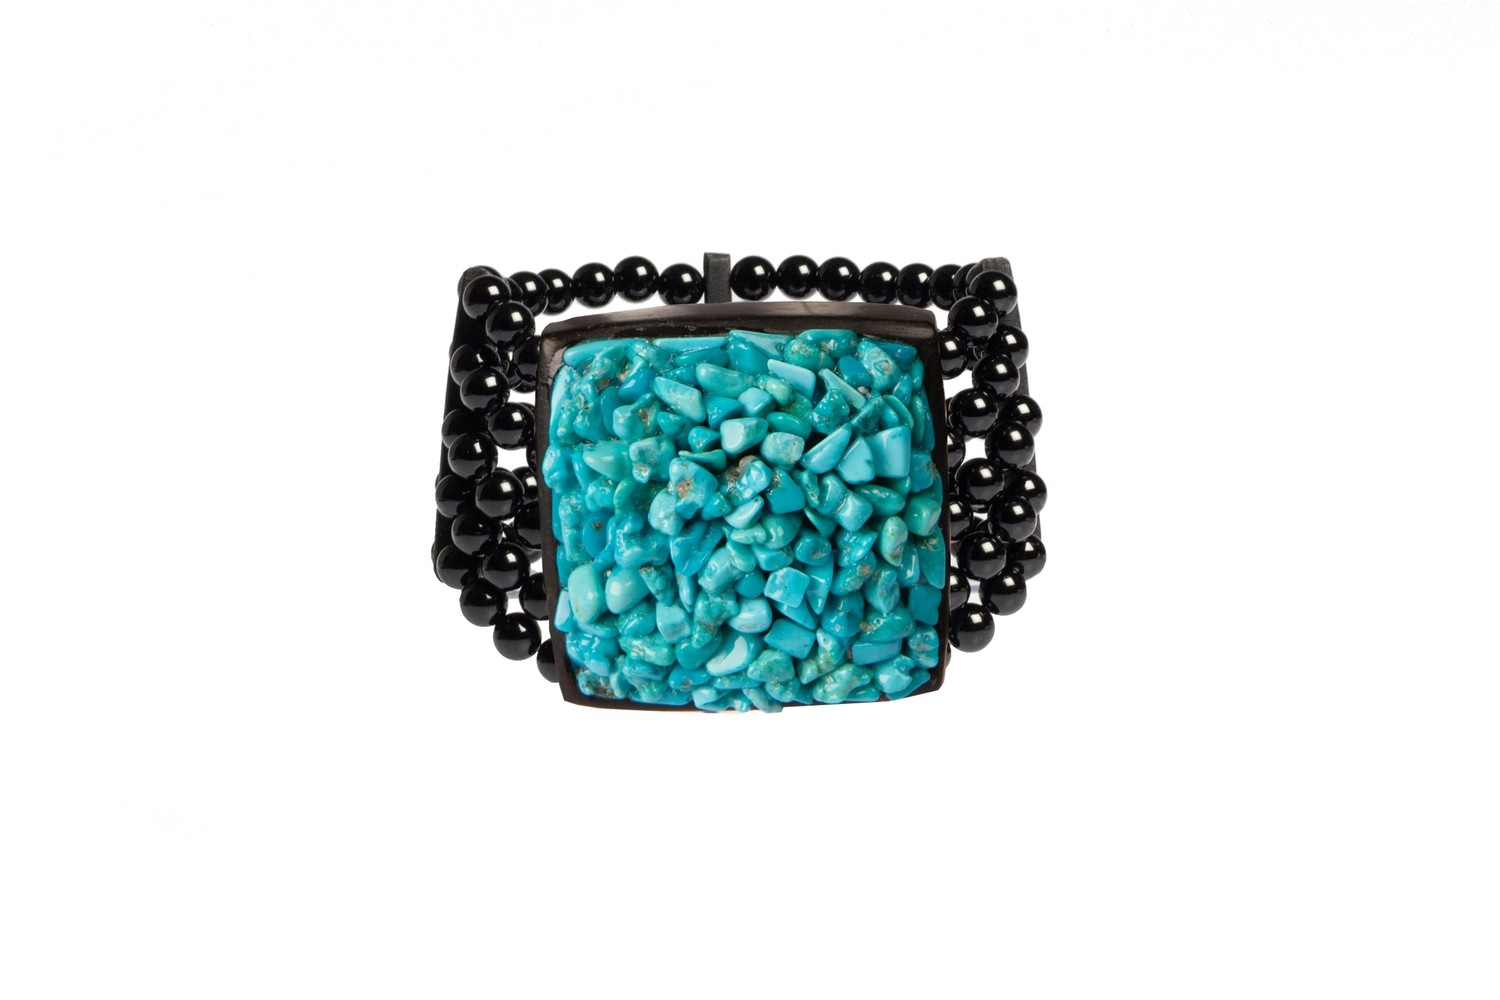 Bracciale in ebano e agata nera con chips di turchese. Forma quadrata - Ebony bracelet and black agate with turquoise chips. Square shape